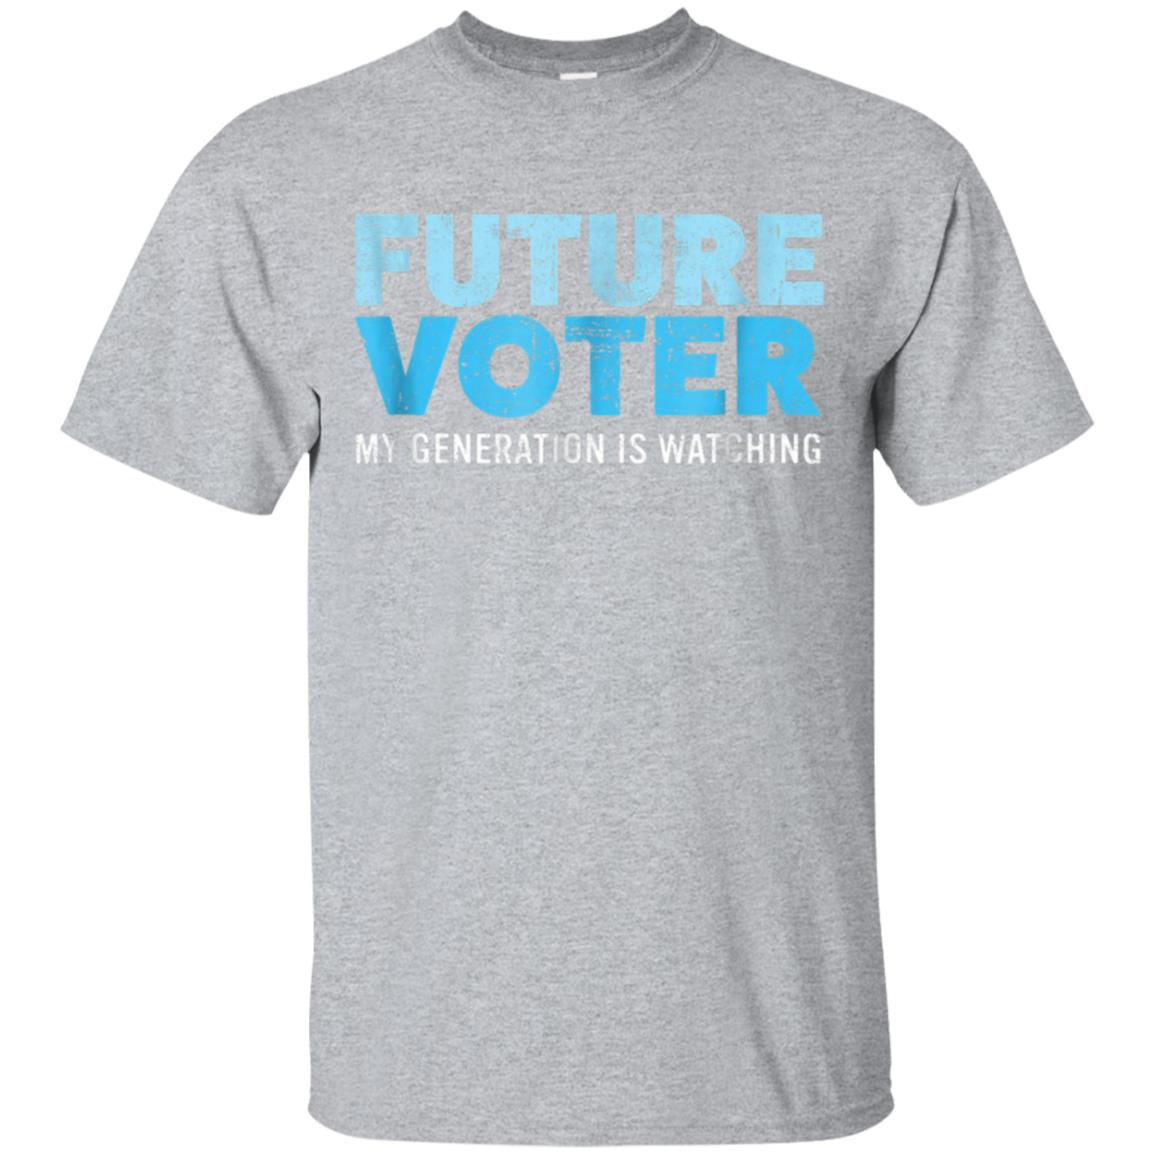 Future Voter Shirt Resist Political T-Shirt for Kids & Teens 99promocode